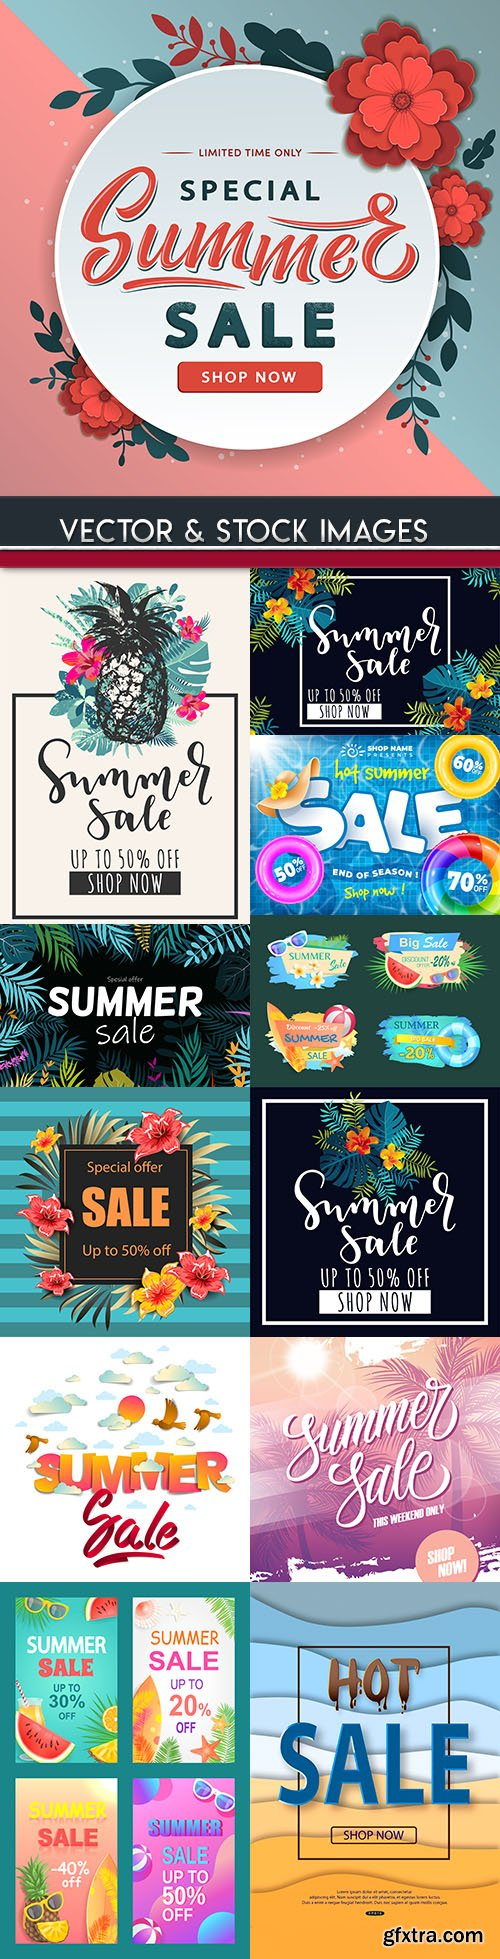 Summer sales special holiday banner illustrations 11